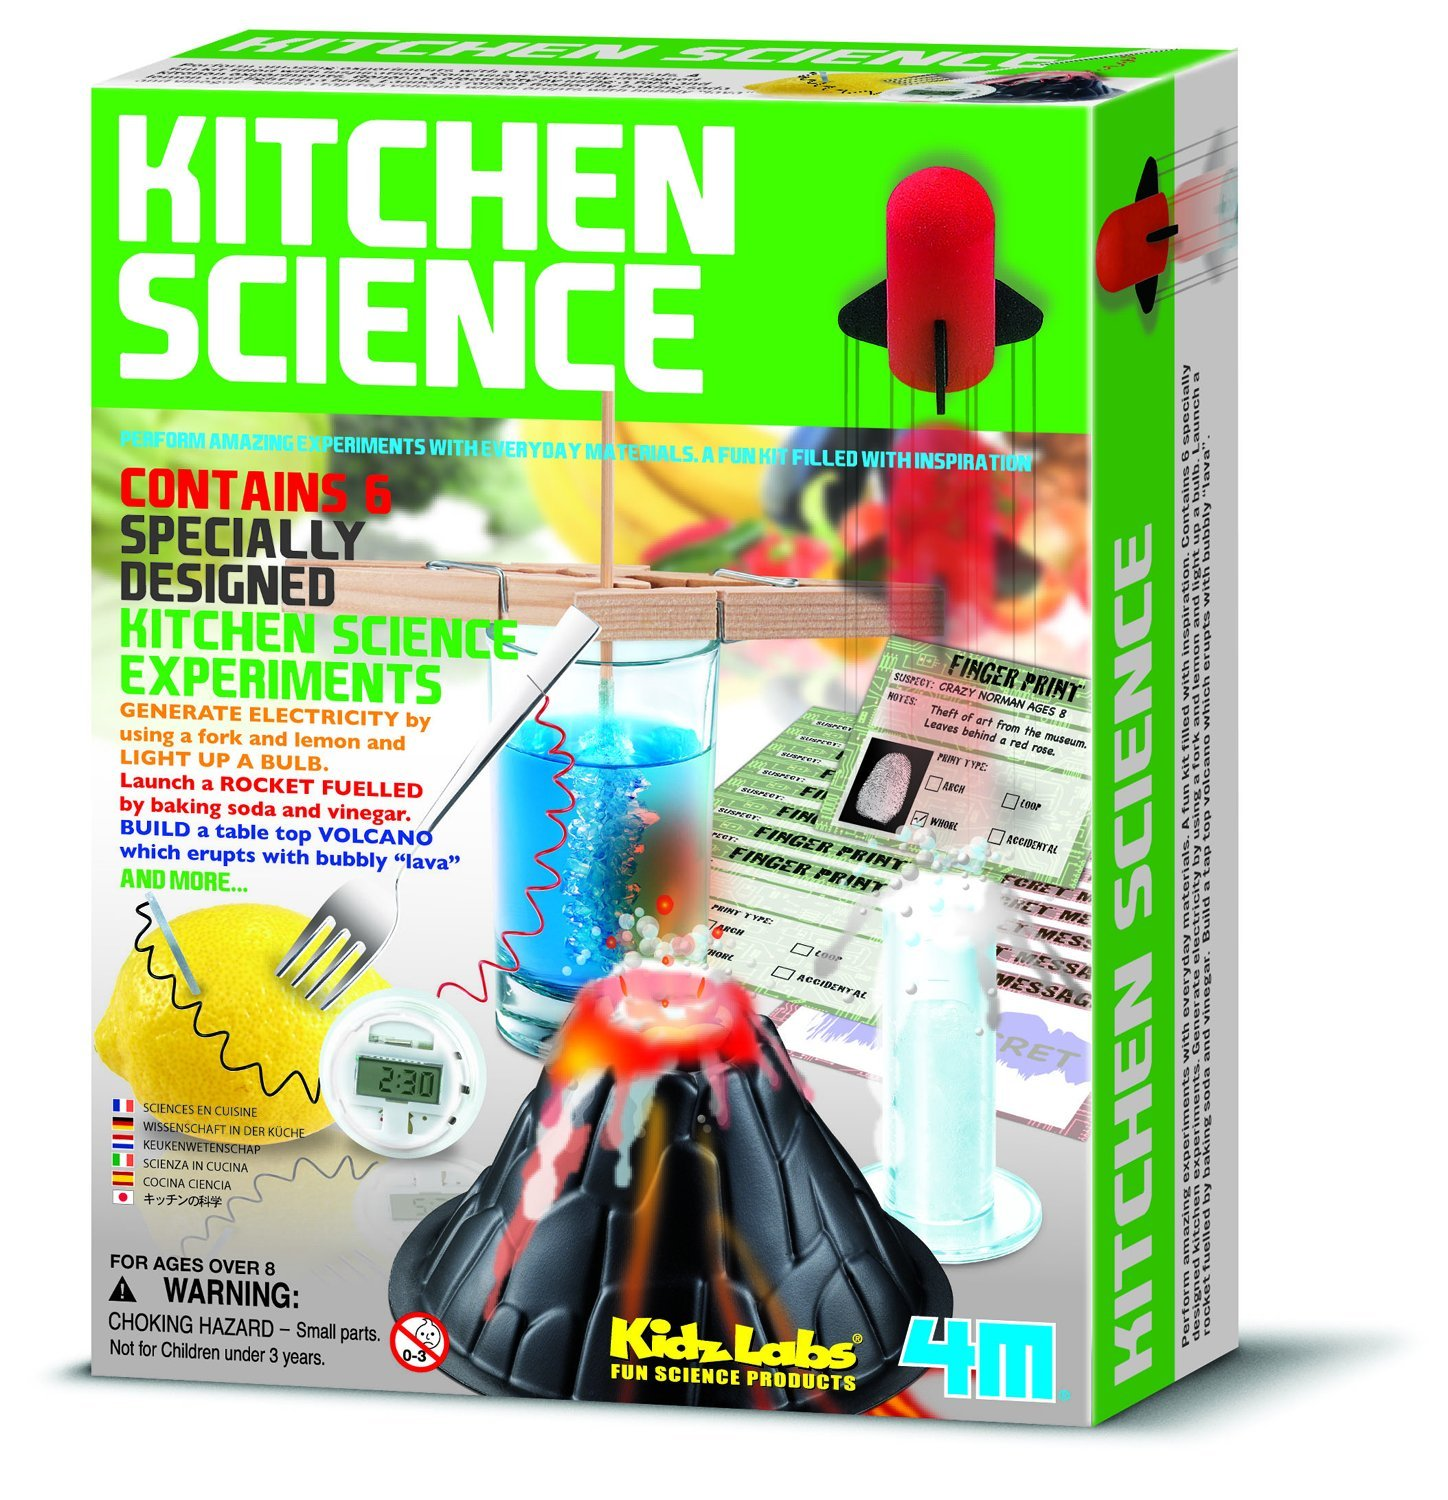 Fun kitchen science kit